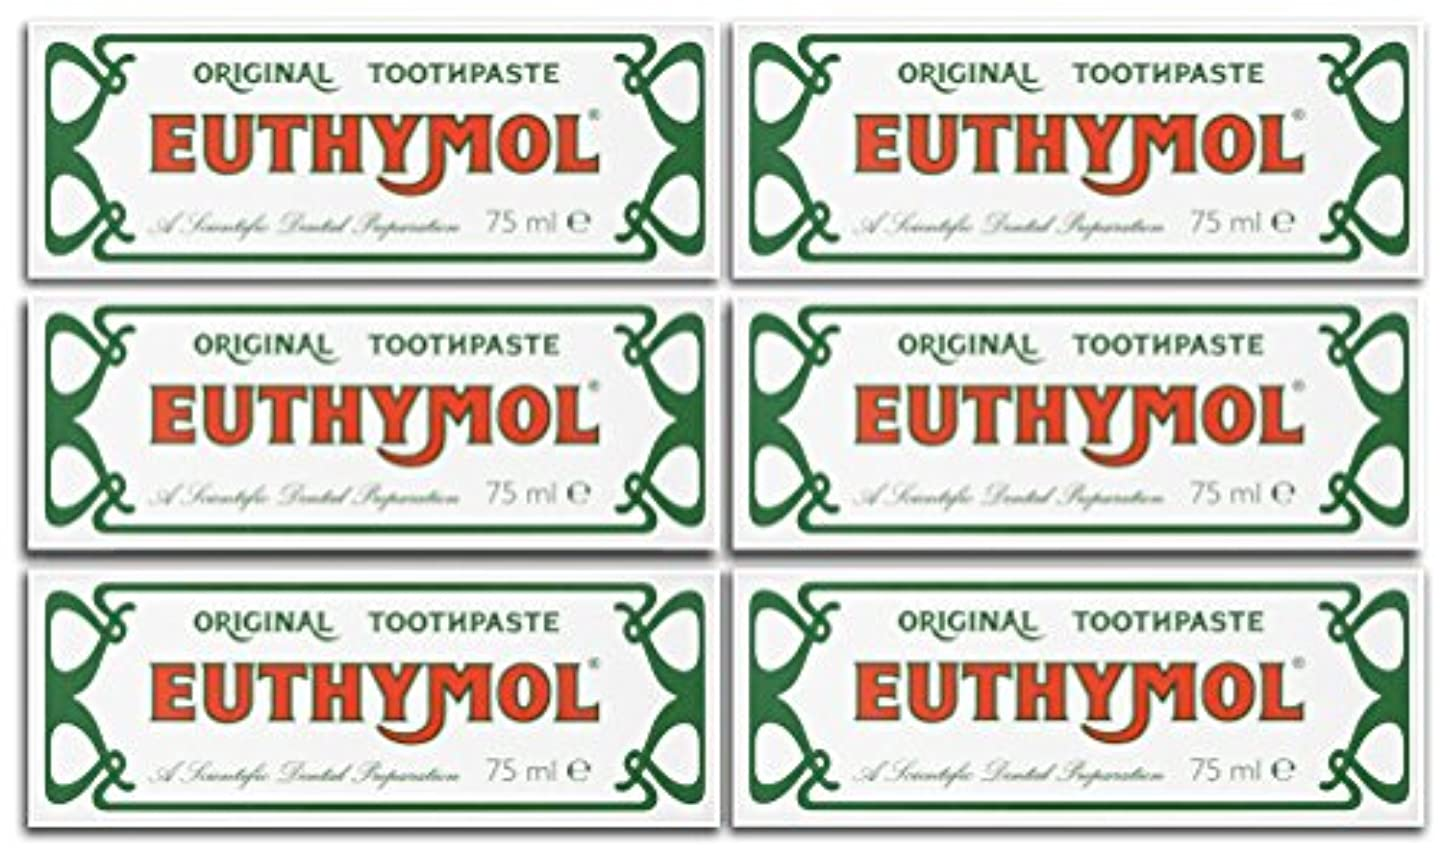 お互いモスク勝利したEuthymol Original Toothpaste 75ml (Case Of 6) by Euthymol